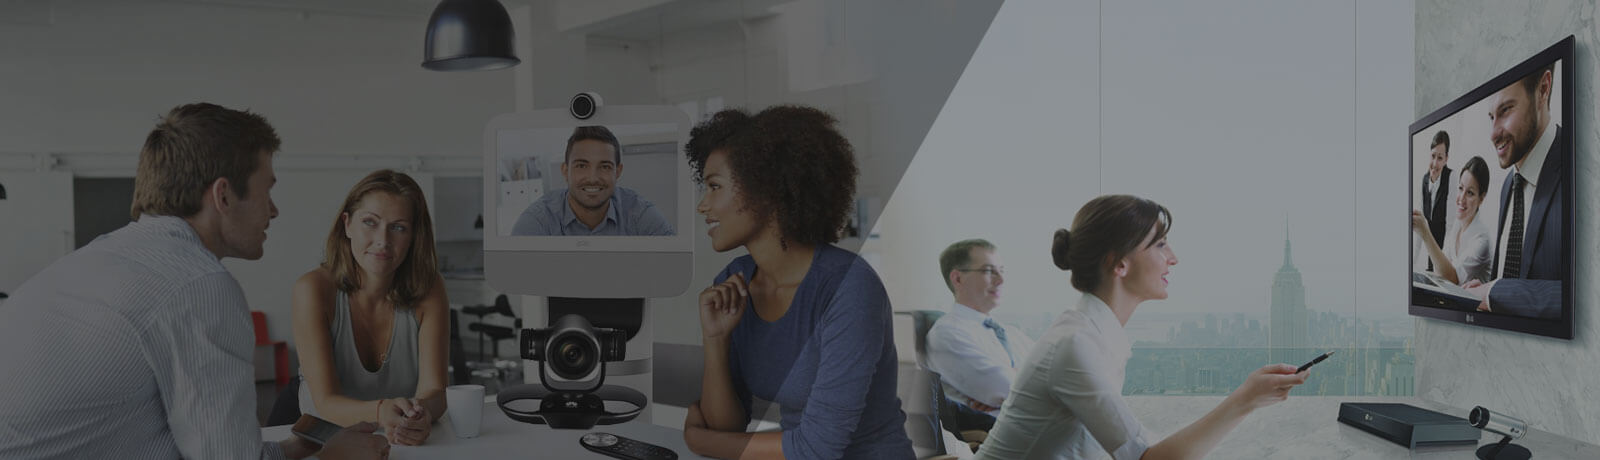 Video Conferencing System Services in UAE